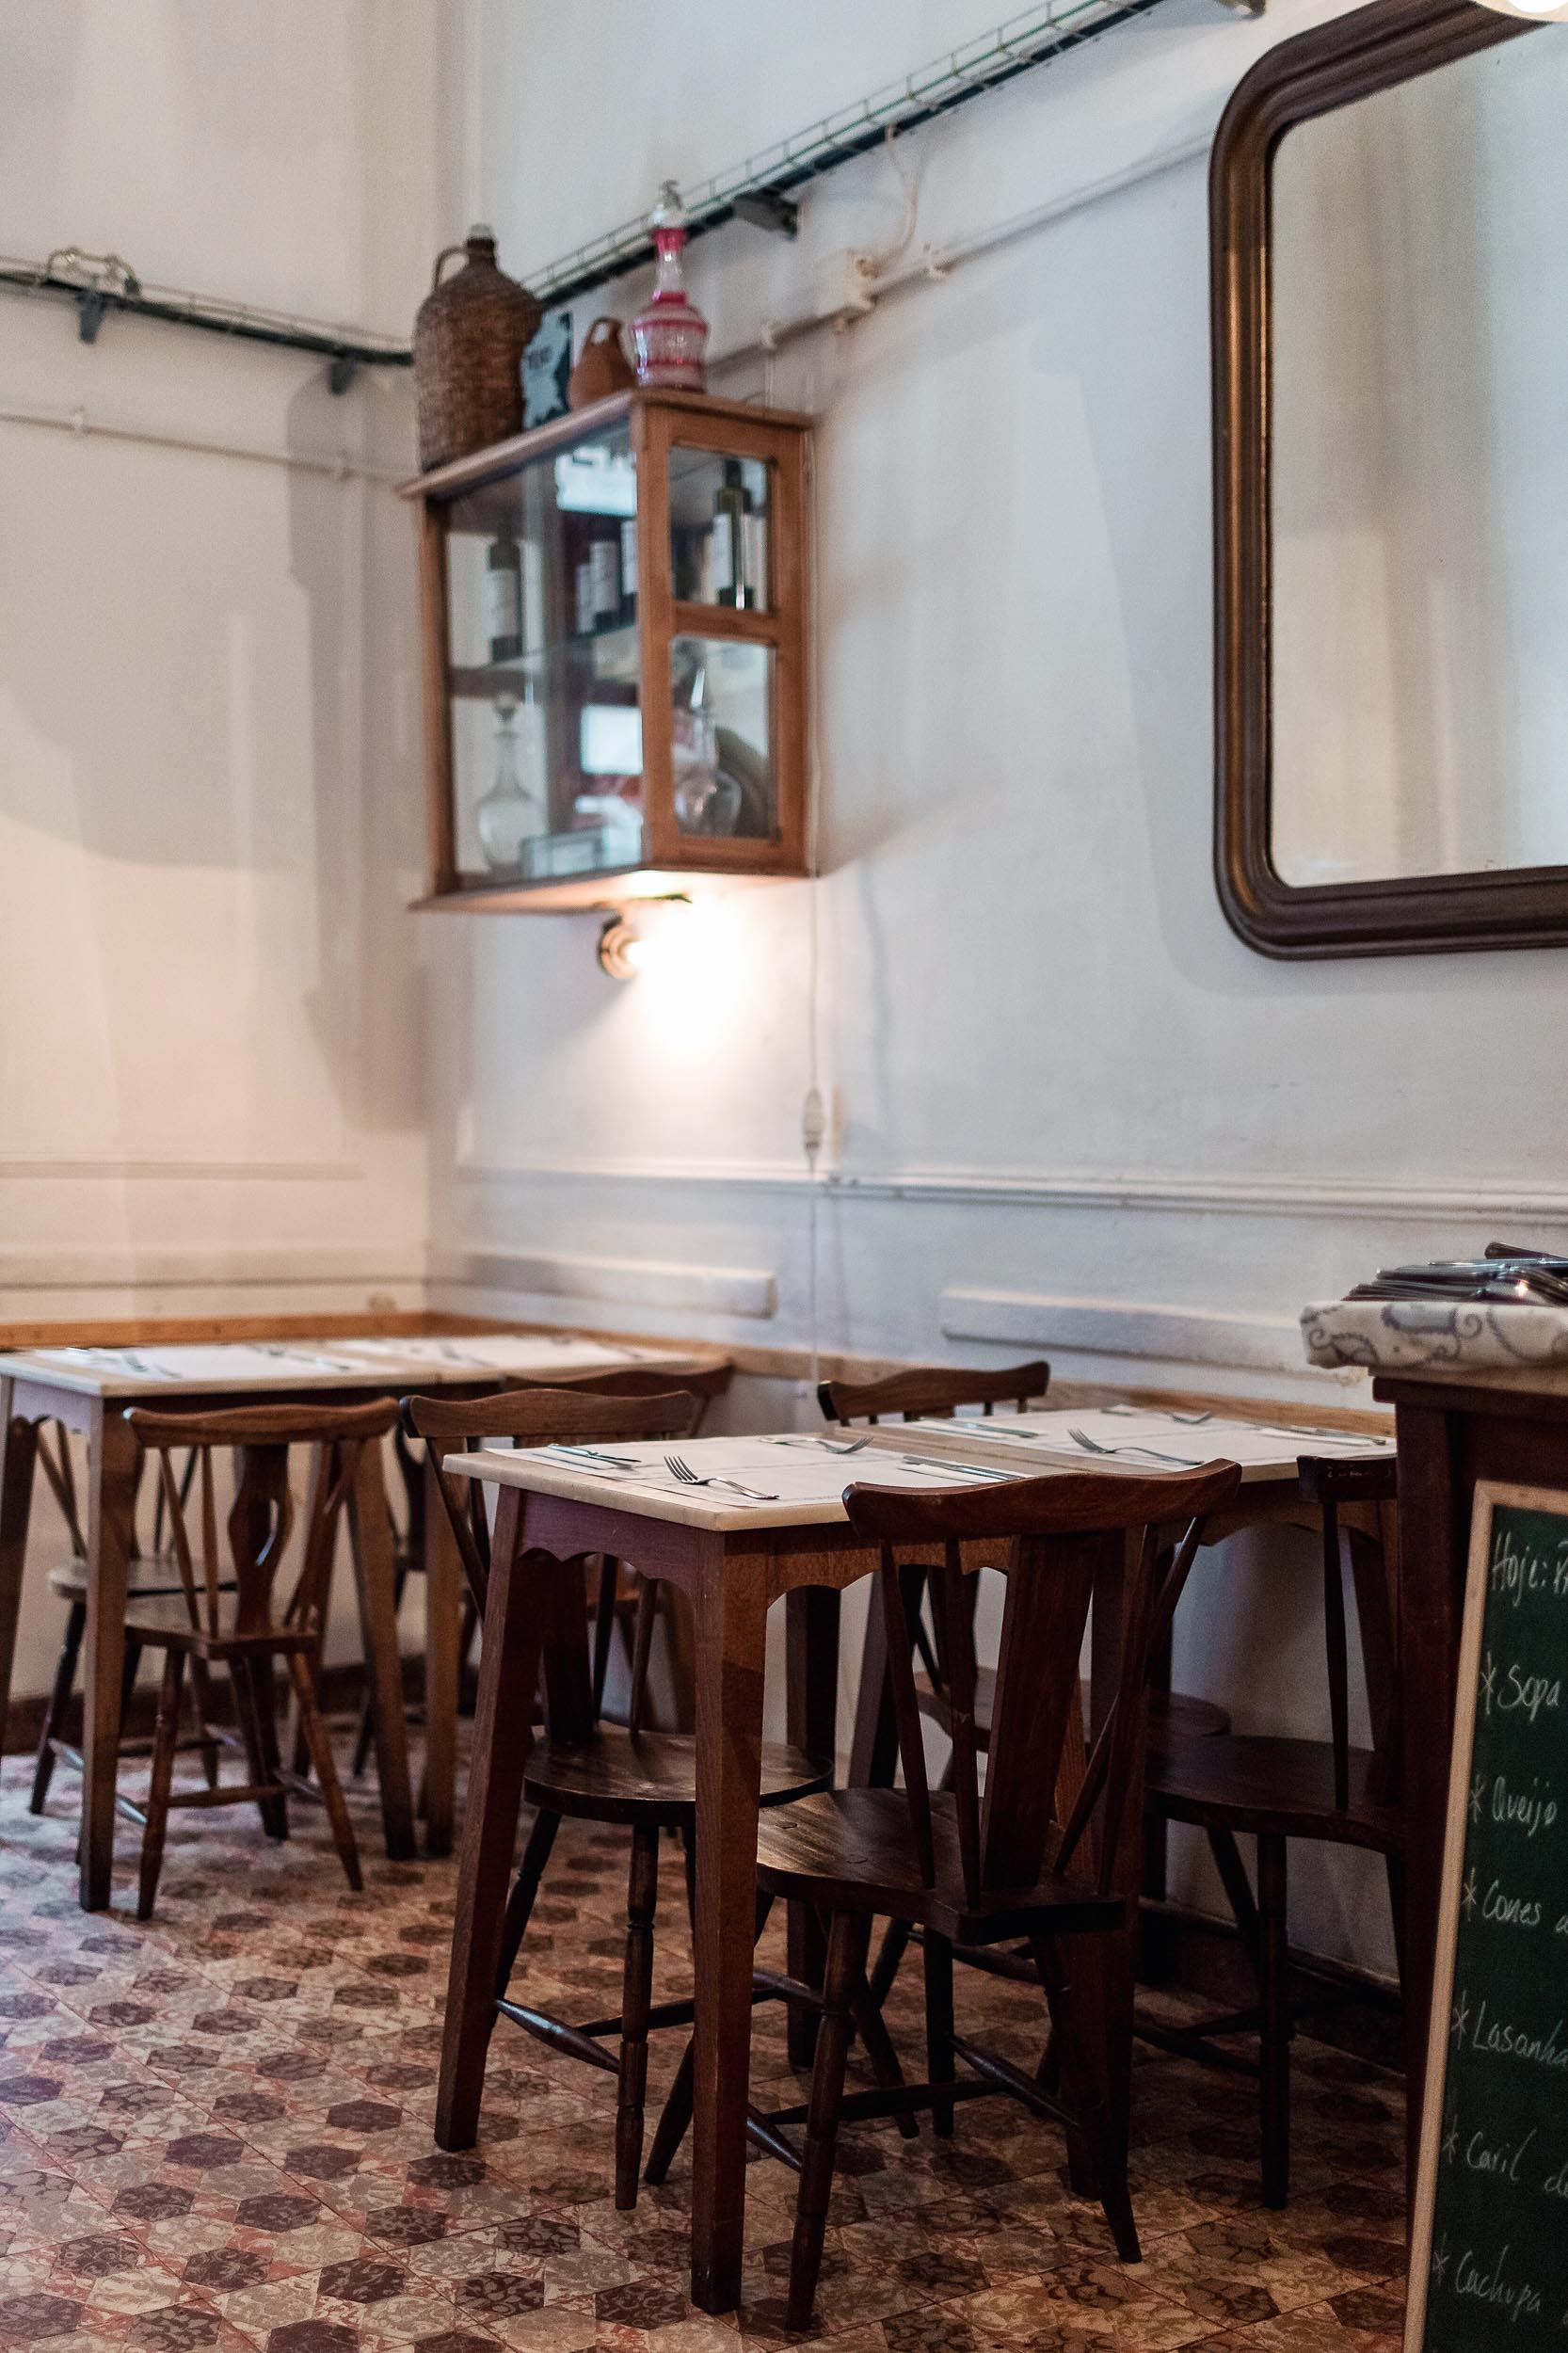 Make sure to dine at Taberna da Rua das Flores when in Lisbon